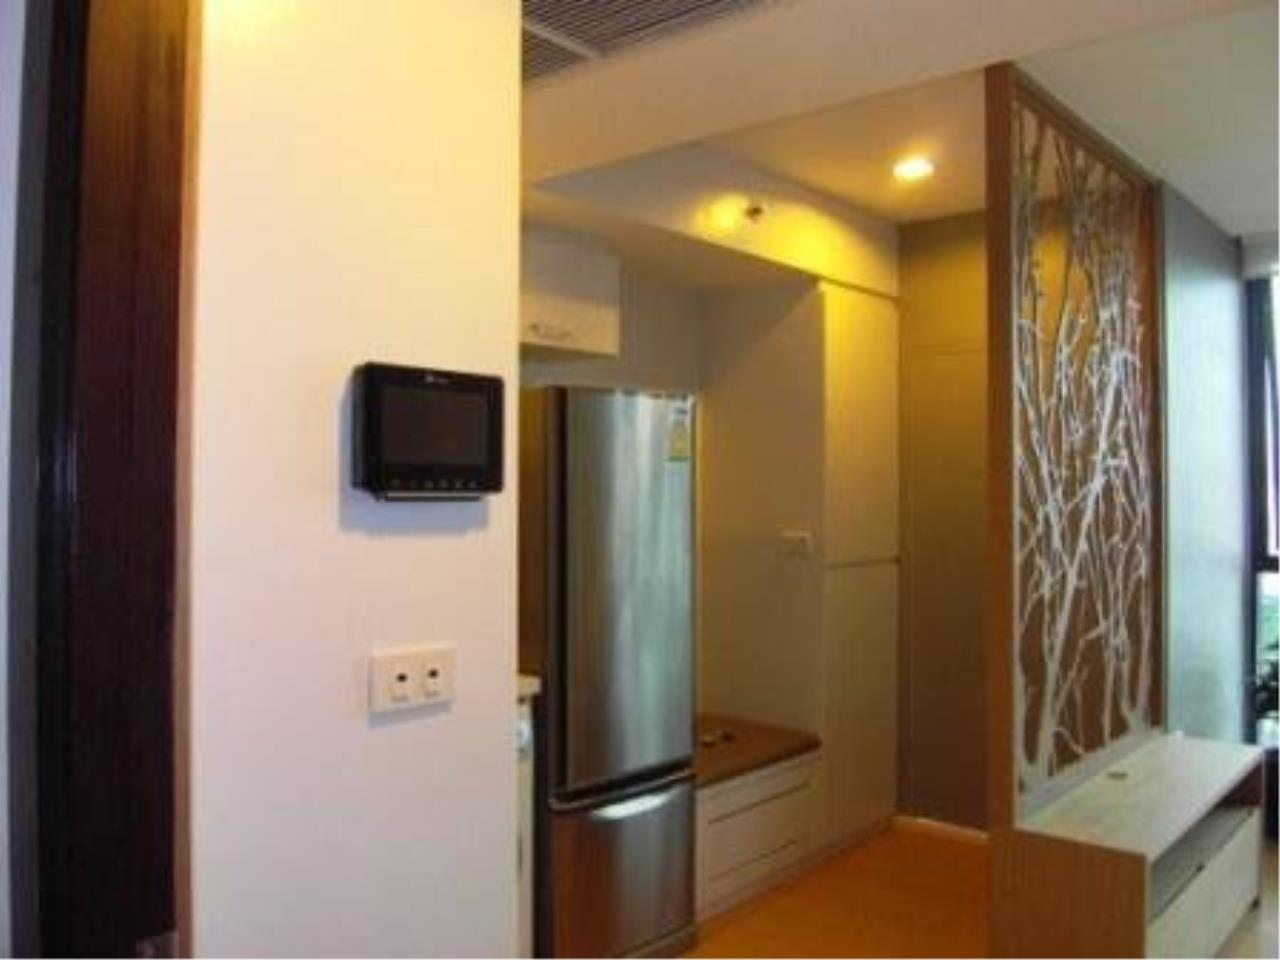 Piri Property Agency's Cozy 1 Bedroom in the Alcove Thonglor 10 building for rent on high floor 4